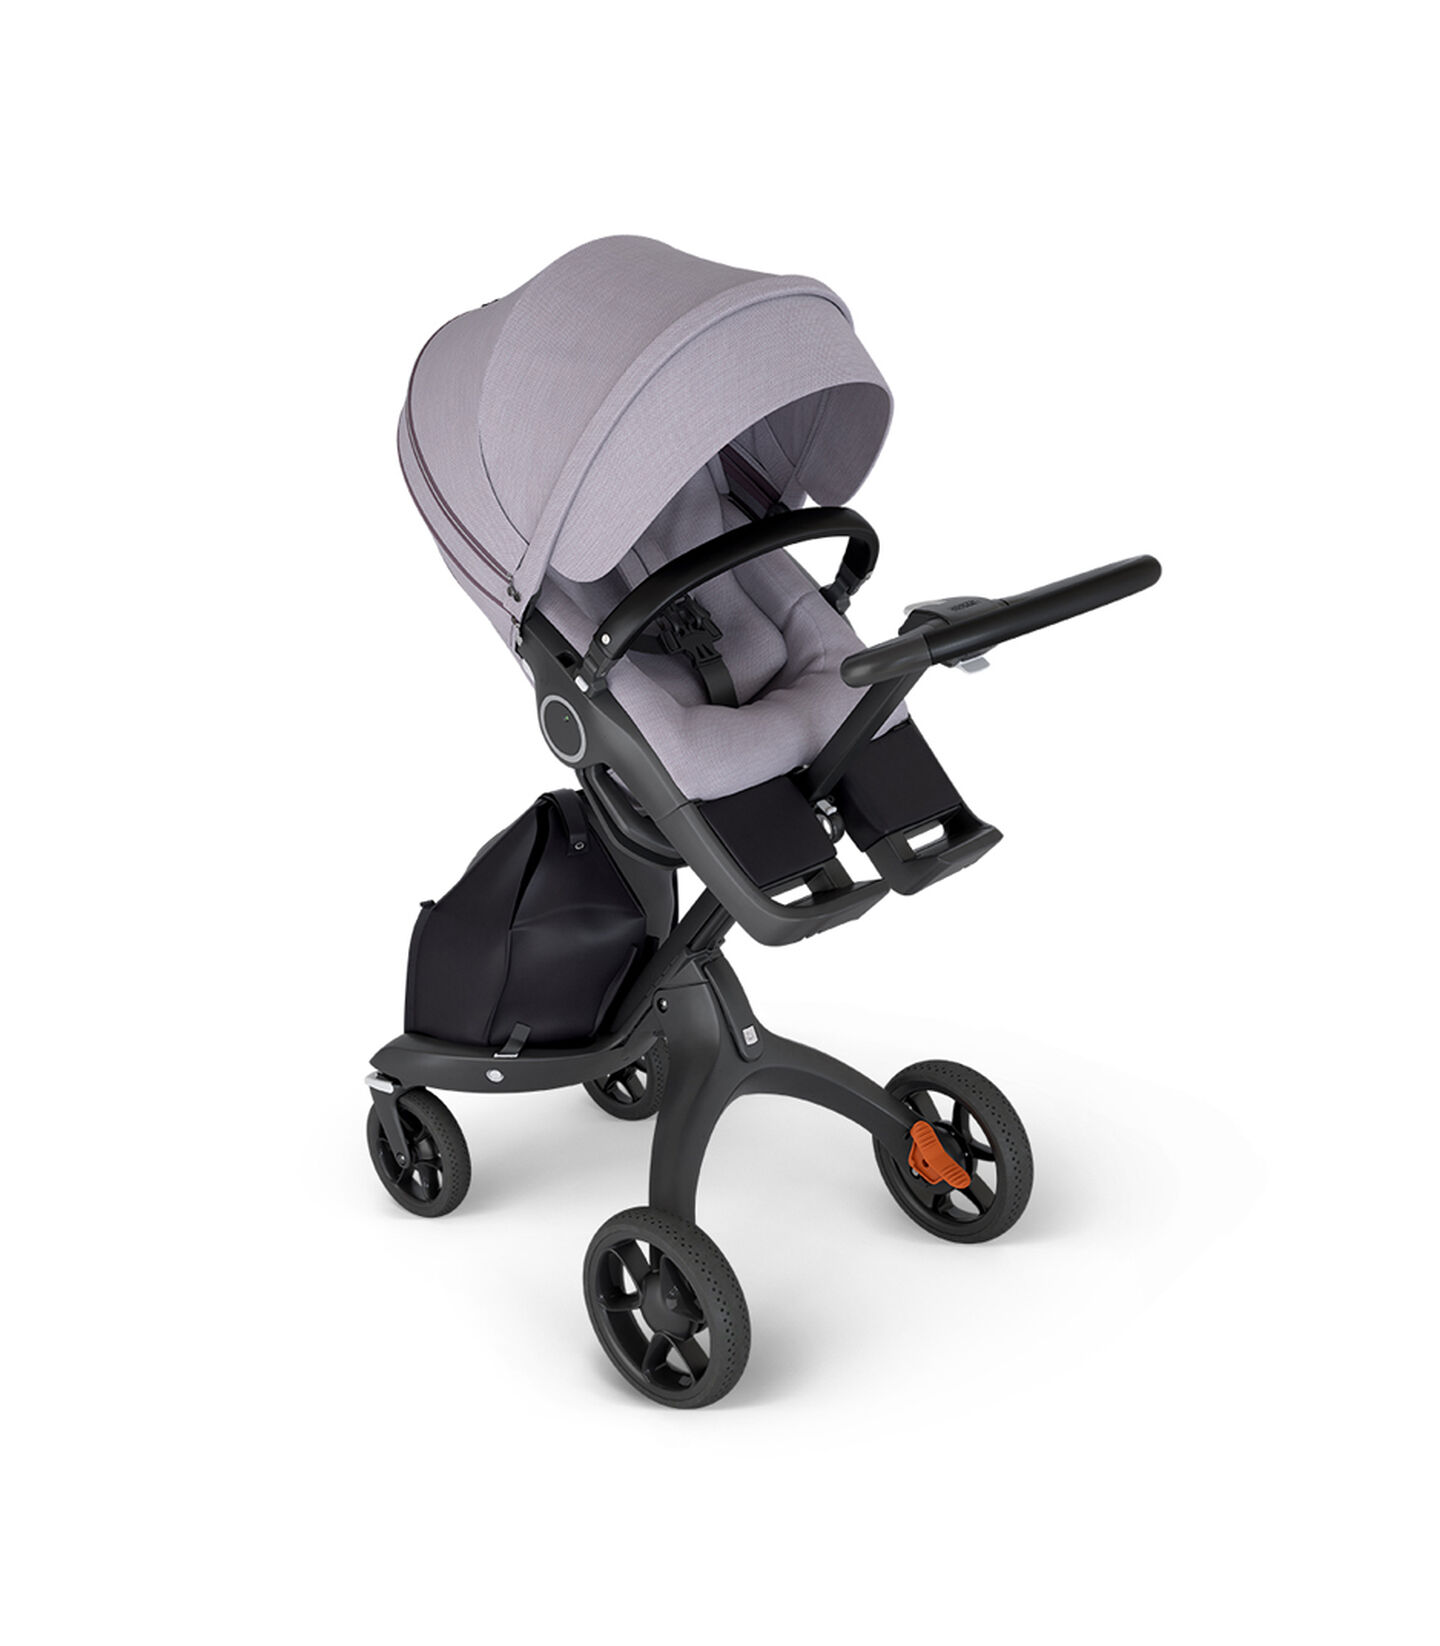 Stokke® Xplory® with Black Chassis and Leatherette Black handle. Stokke® Stroller Seat Brushed Lilac in angled view.